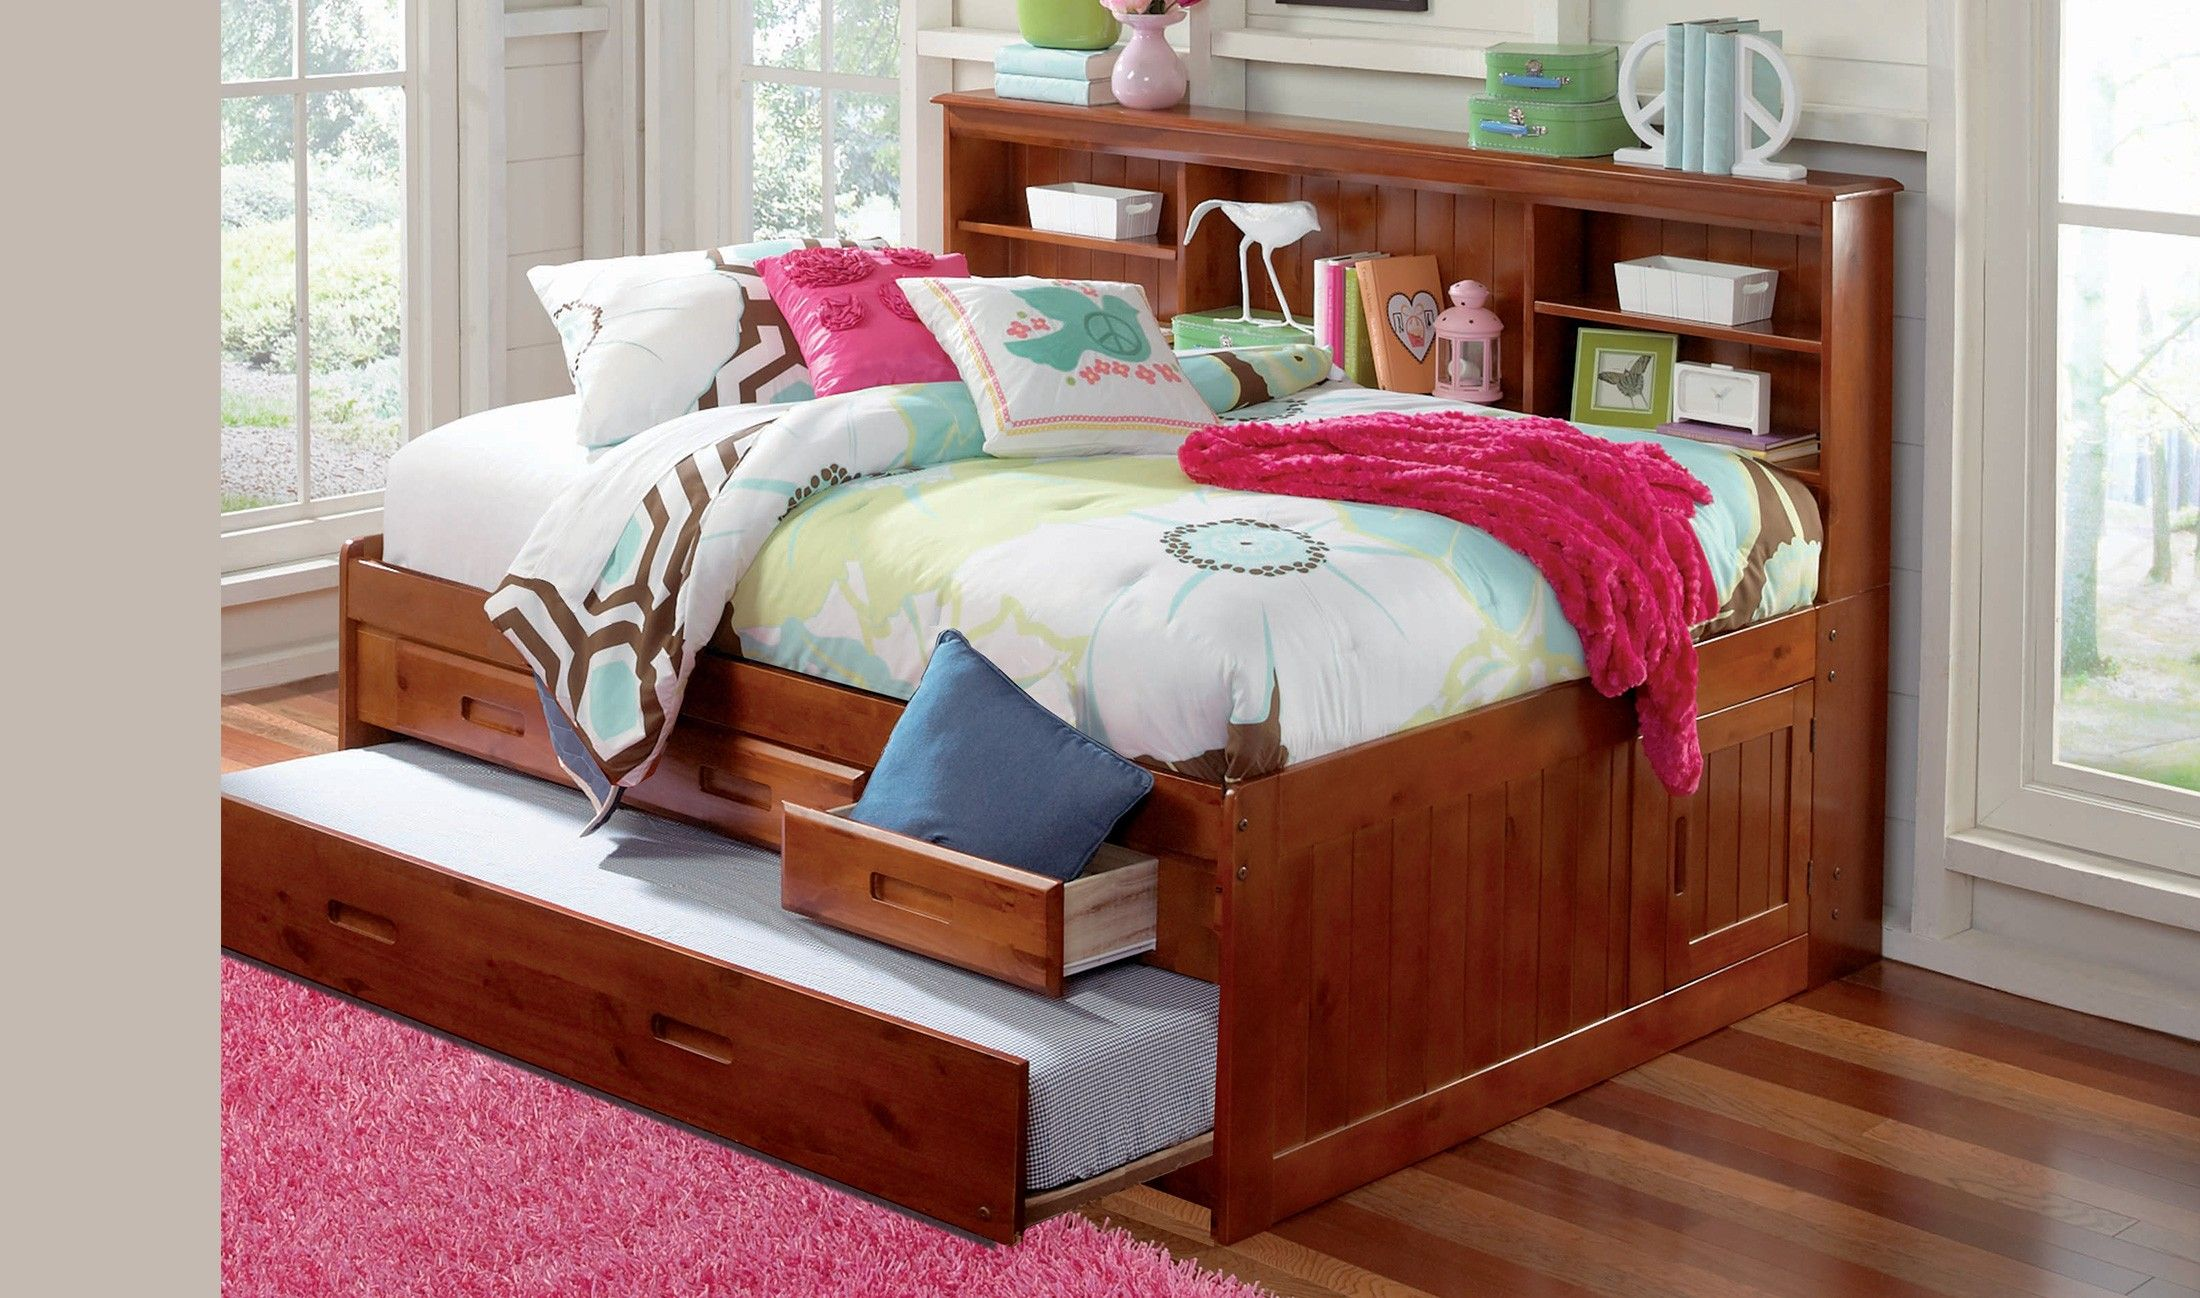 Perfect For Space Saving This Timeless Merlot Full Sized Bookcase Day Bed Offers A Variety Of Daybed With Storage Trundle Bed With Storage Daybed With Drawers Space saving full size bed